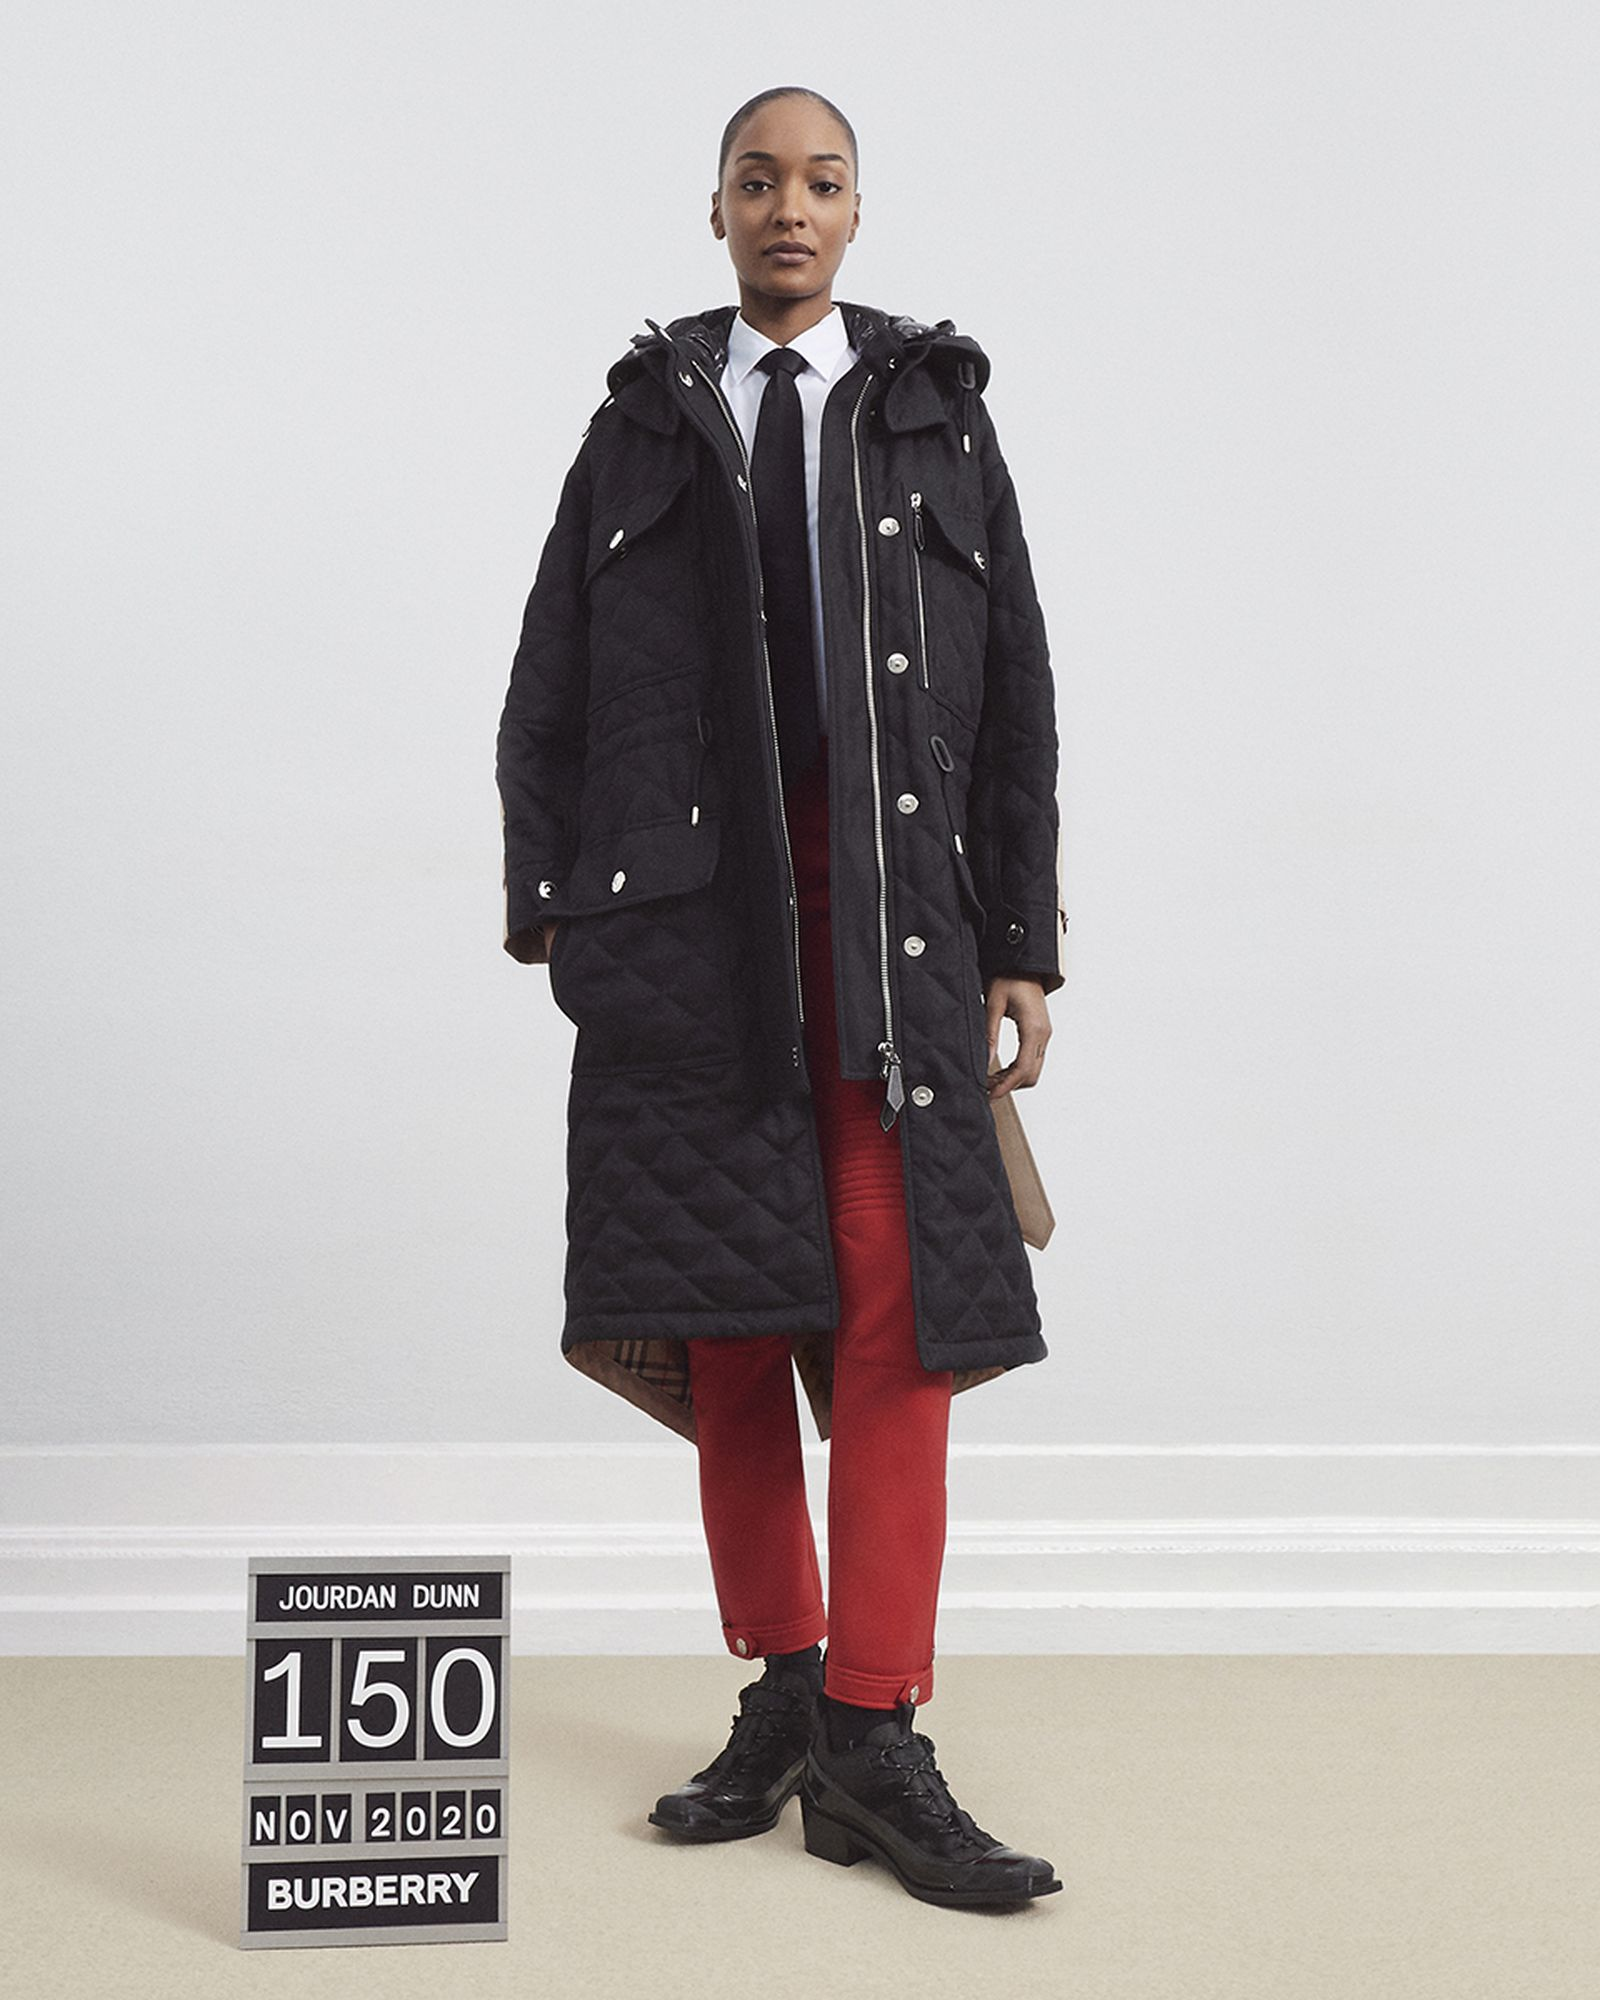 burberry-future-archive-collection-05